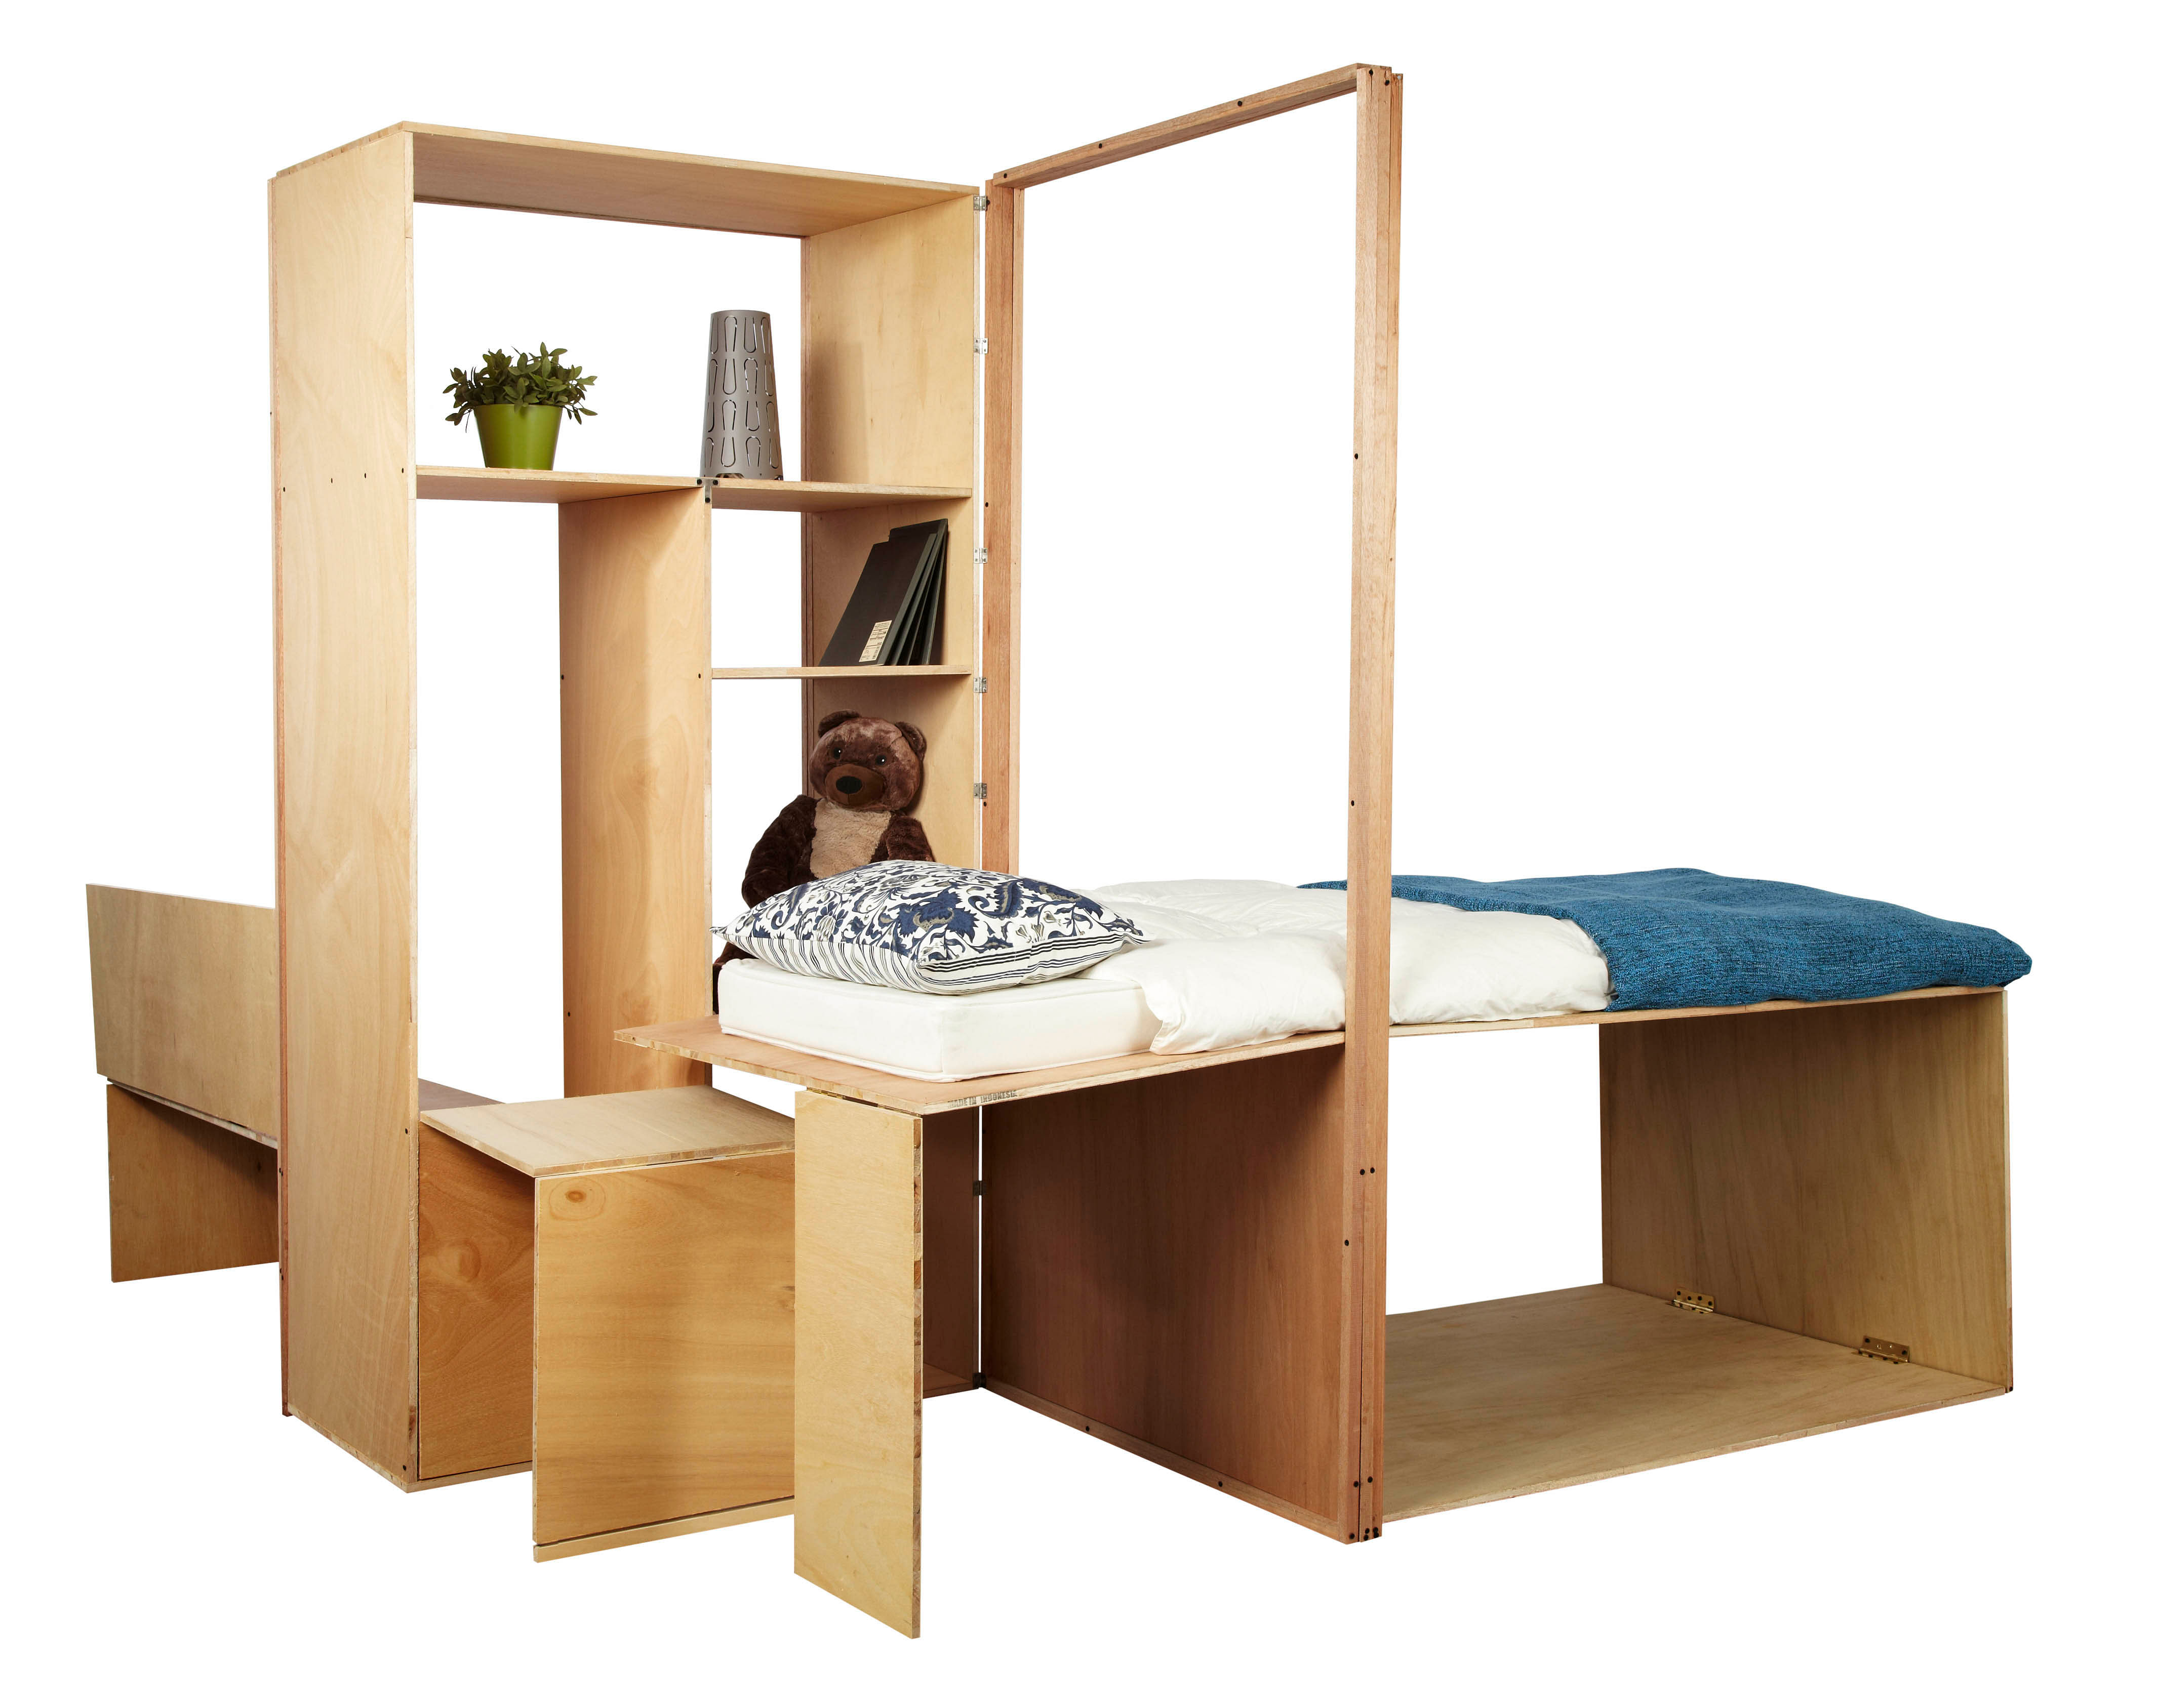 Space Saving Furniture At Ikea 39 S Student Competition